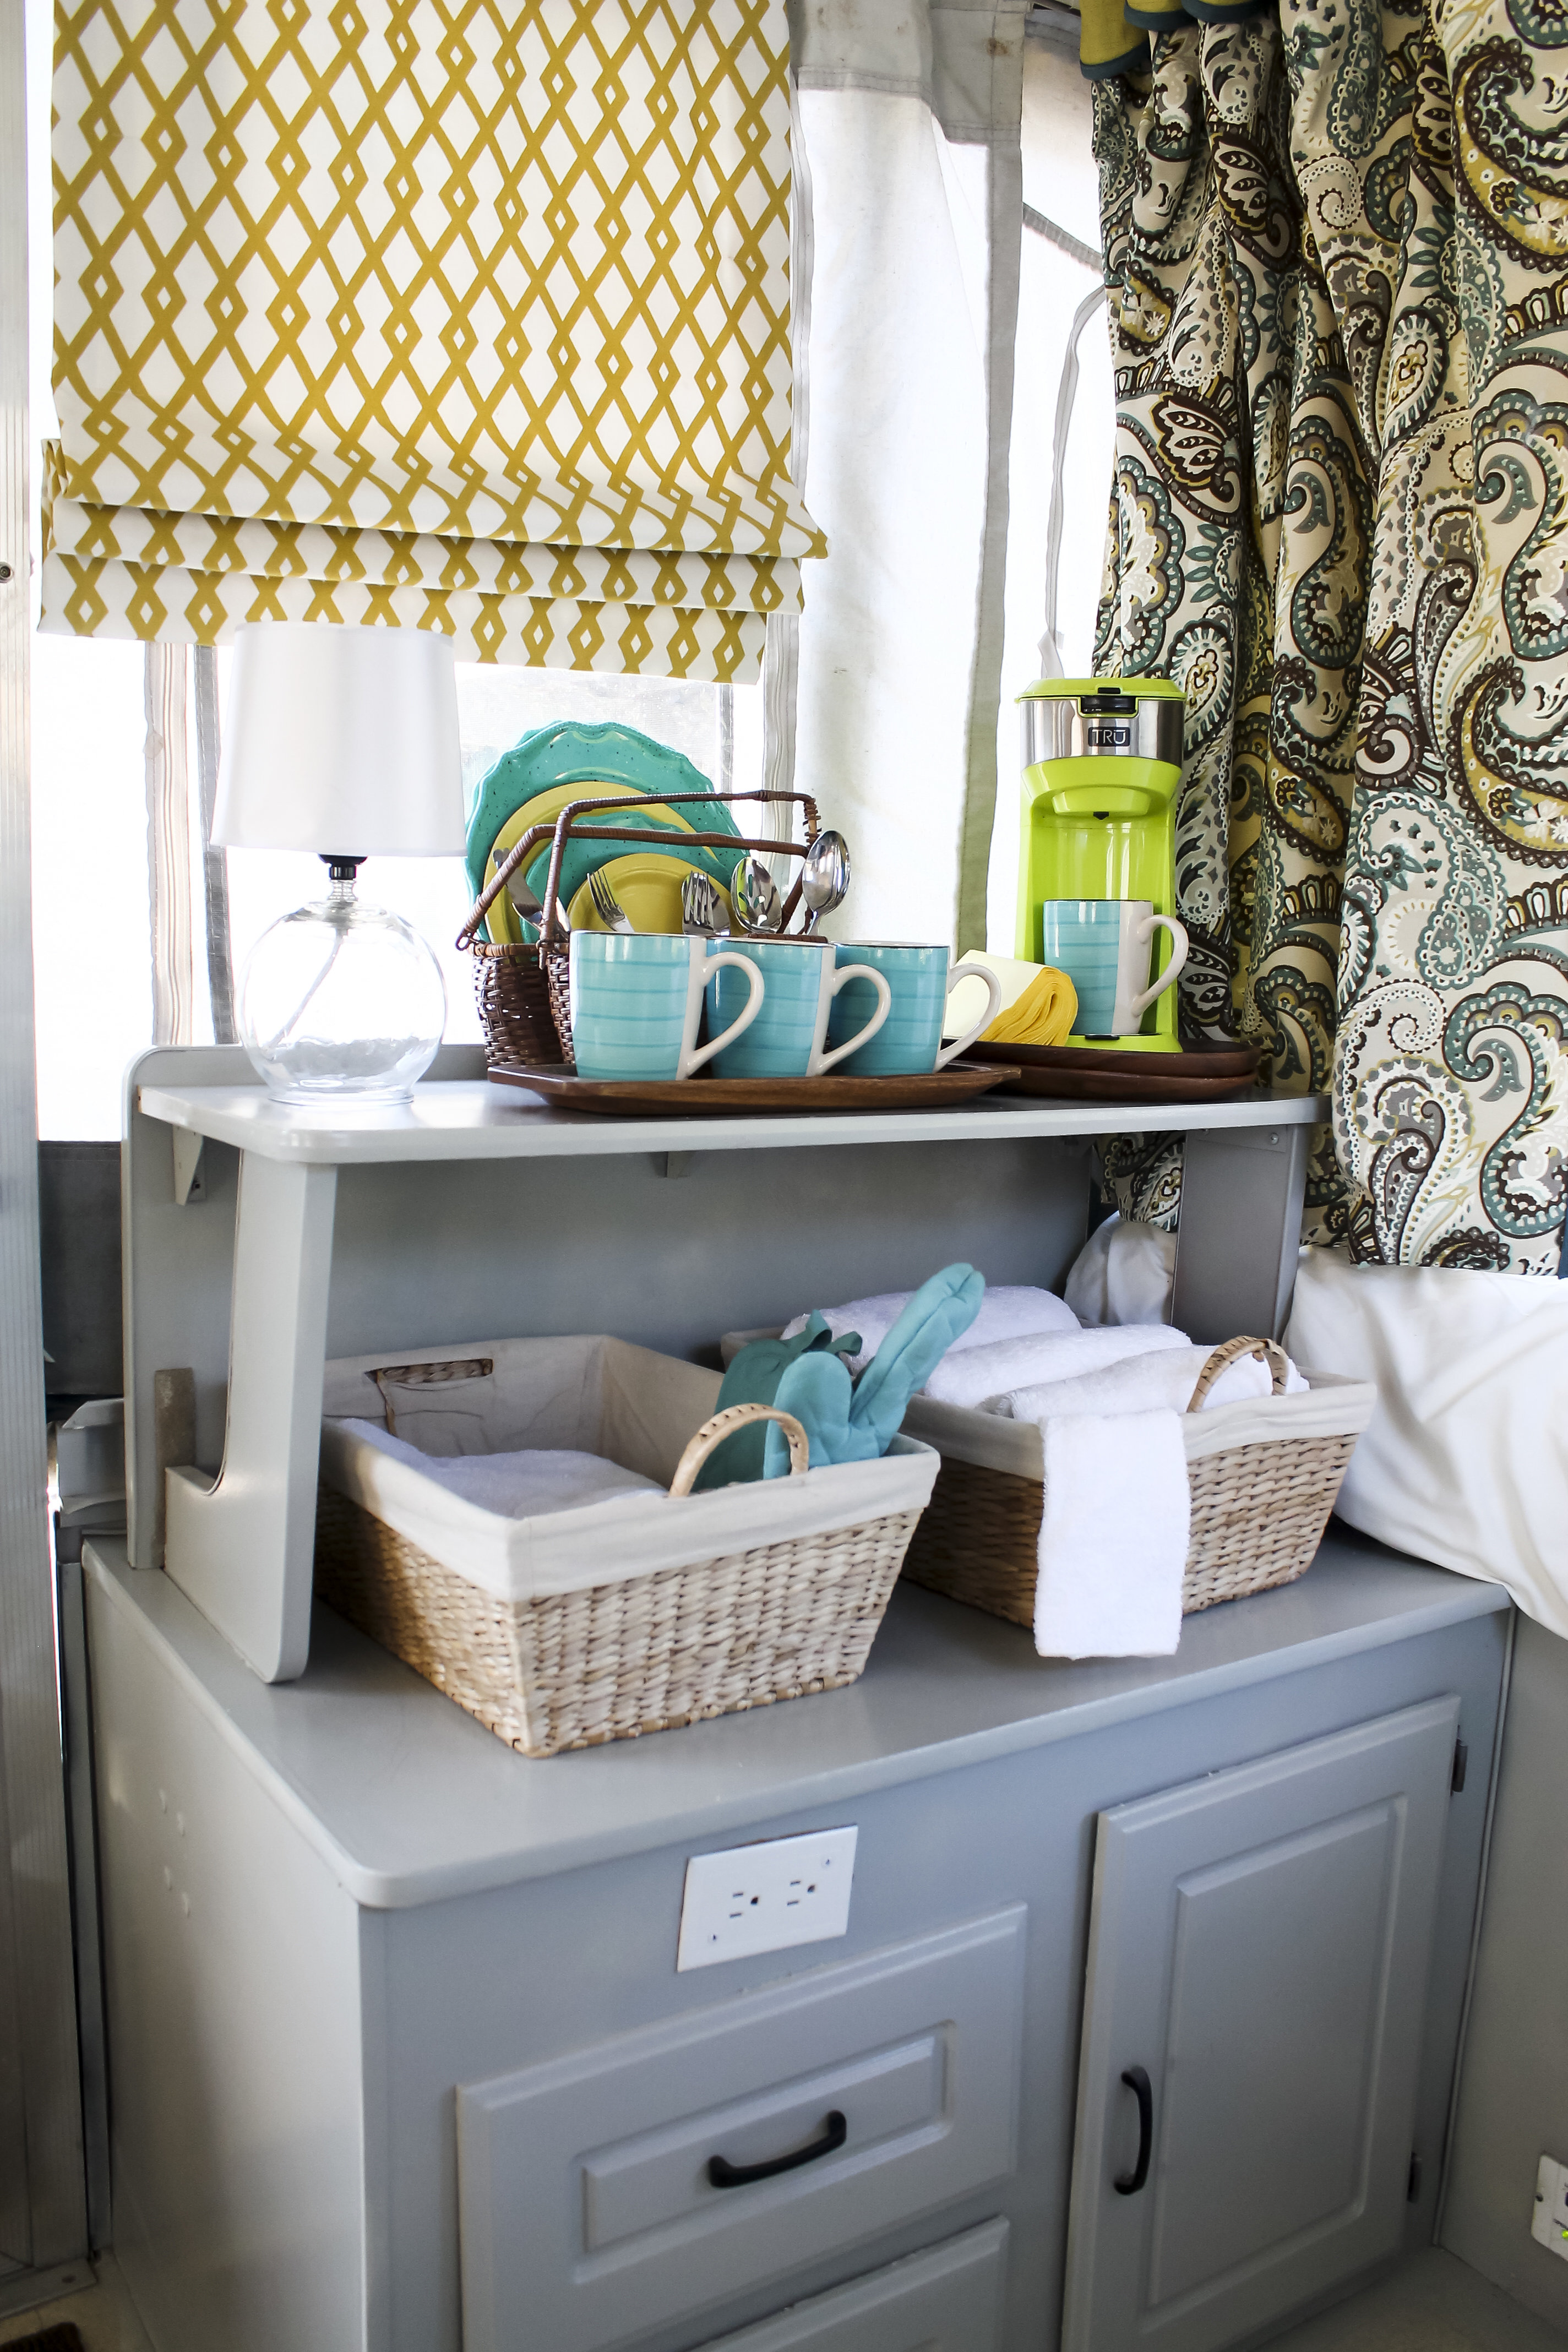 How To Make Workable Roman Shades Using Magnets B C Guides